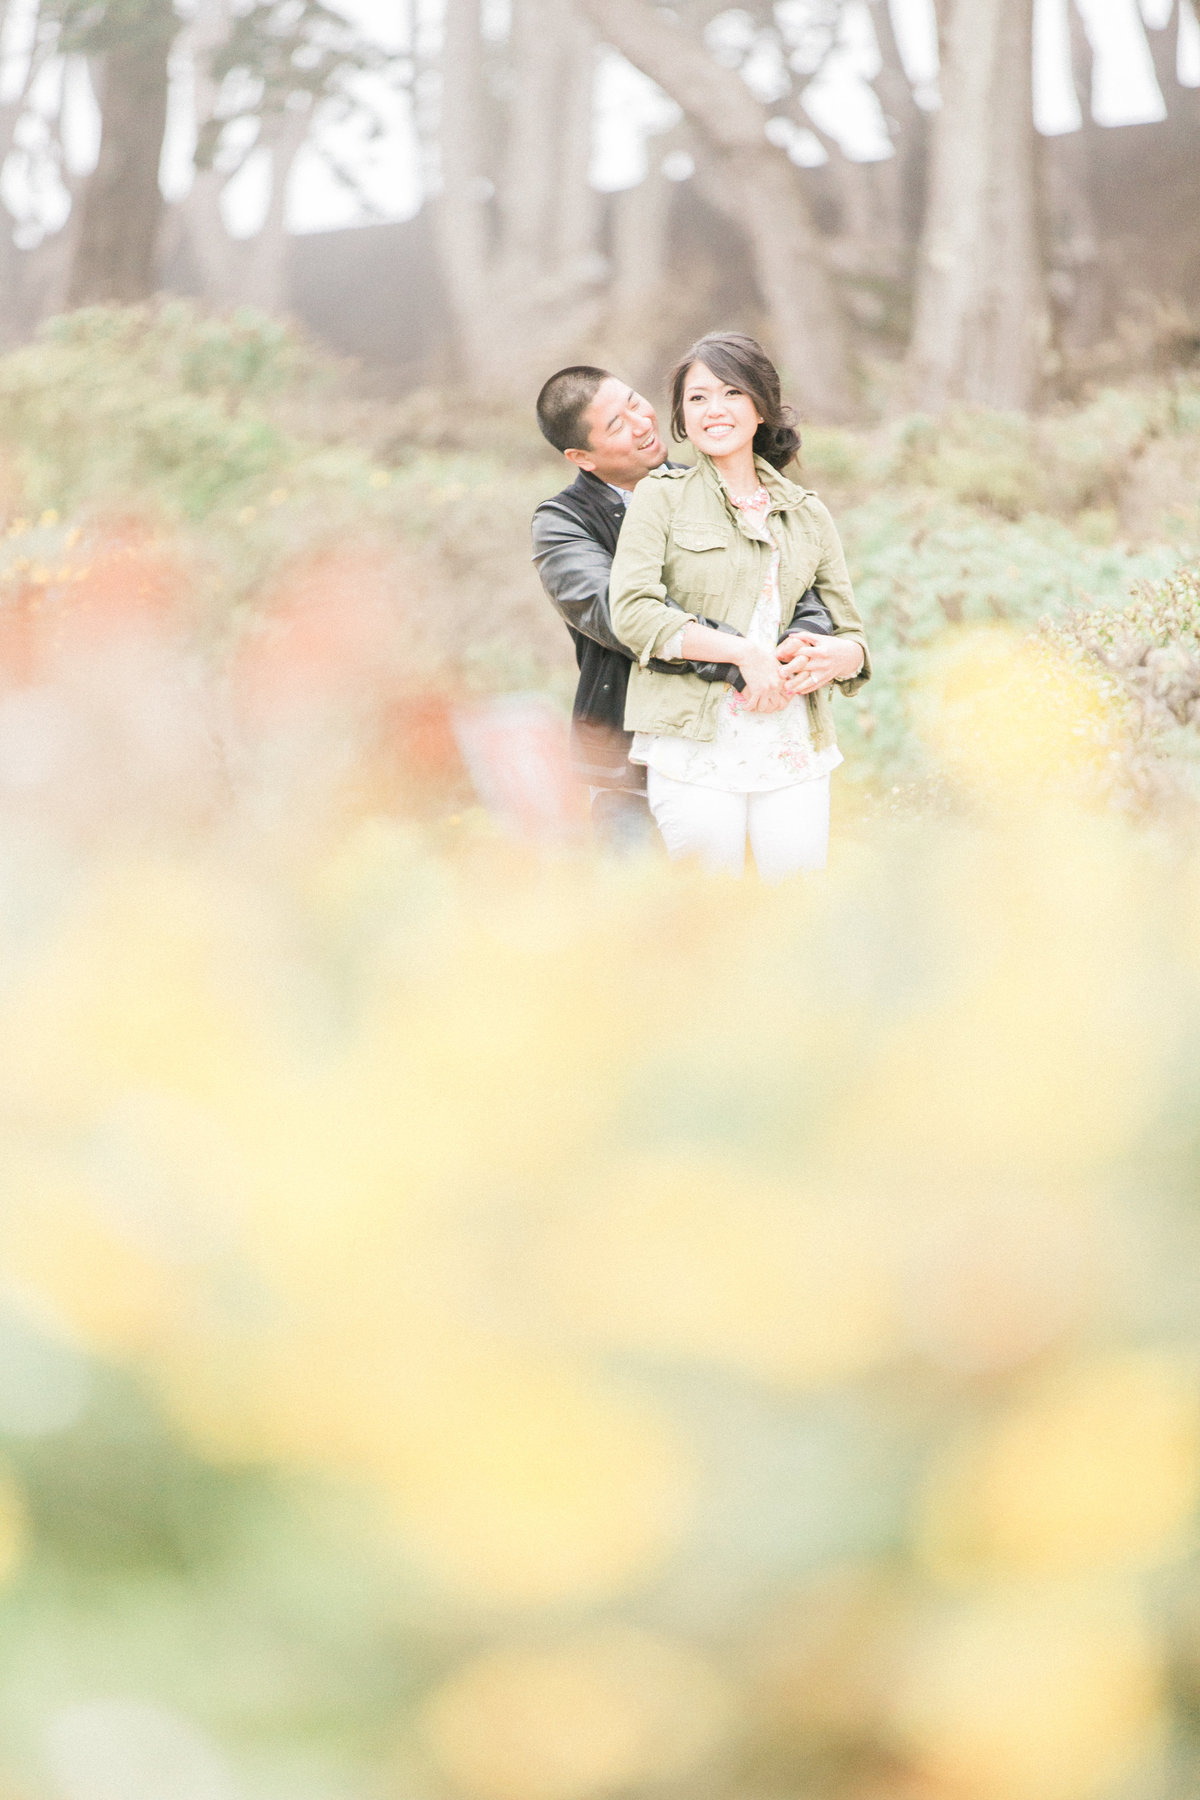 026_SFLandsEndTrail-yellowflowers-engagementsession